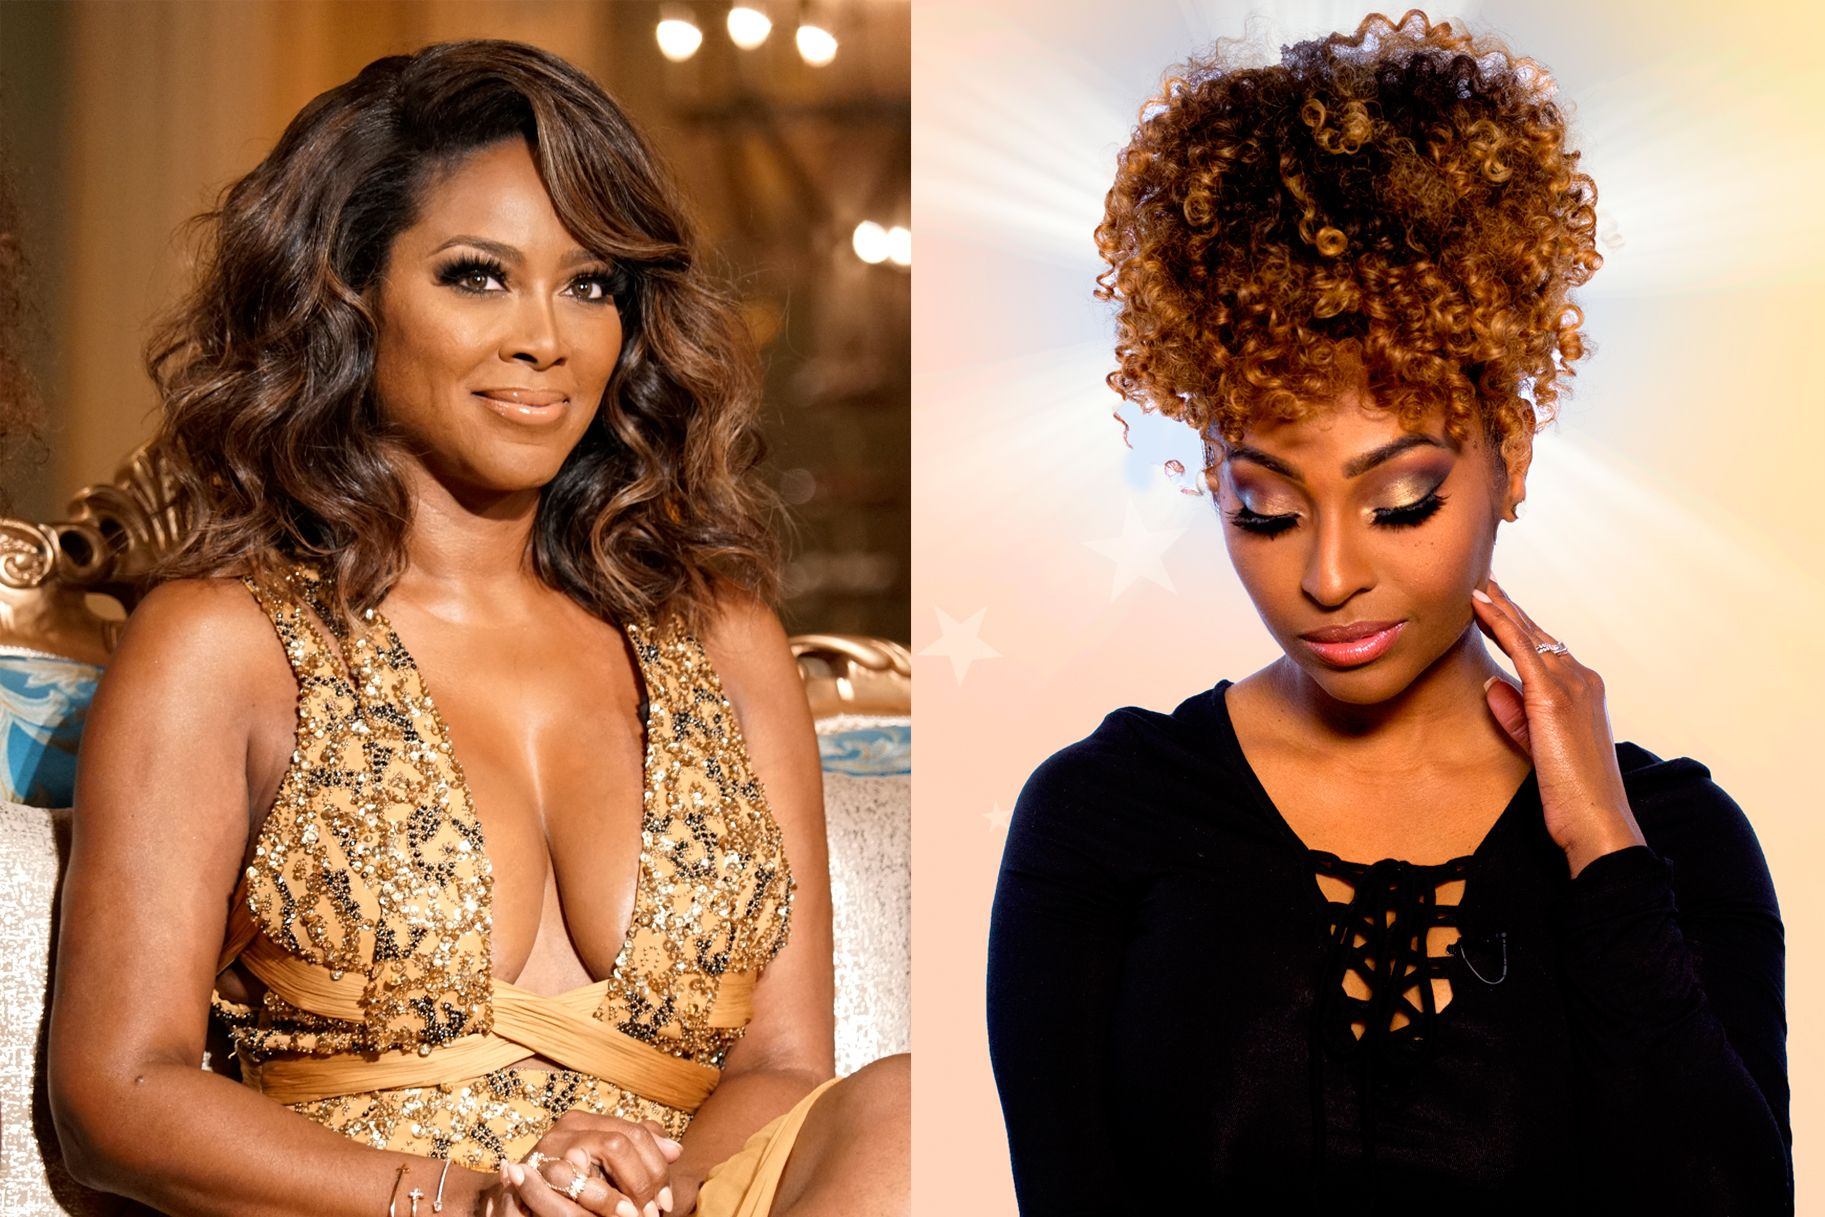 The Real Housewives of Atlanta Season 9 reunion has seen a